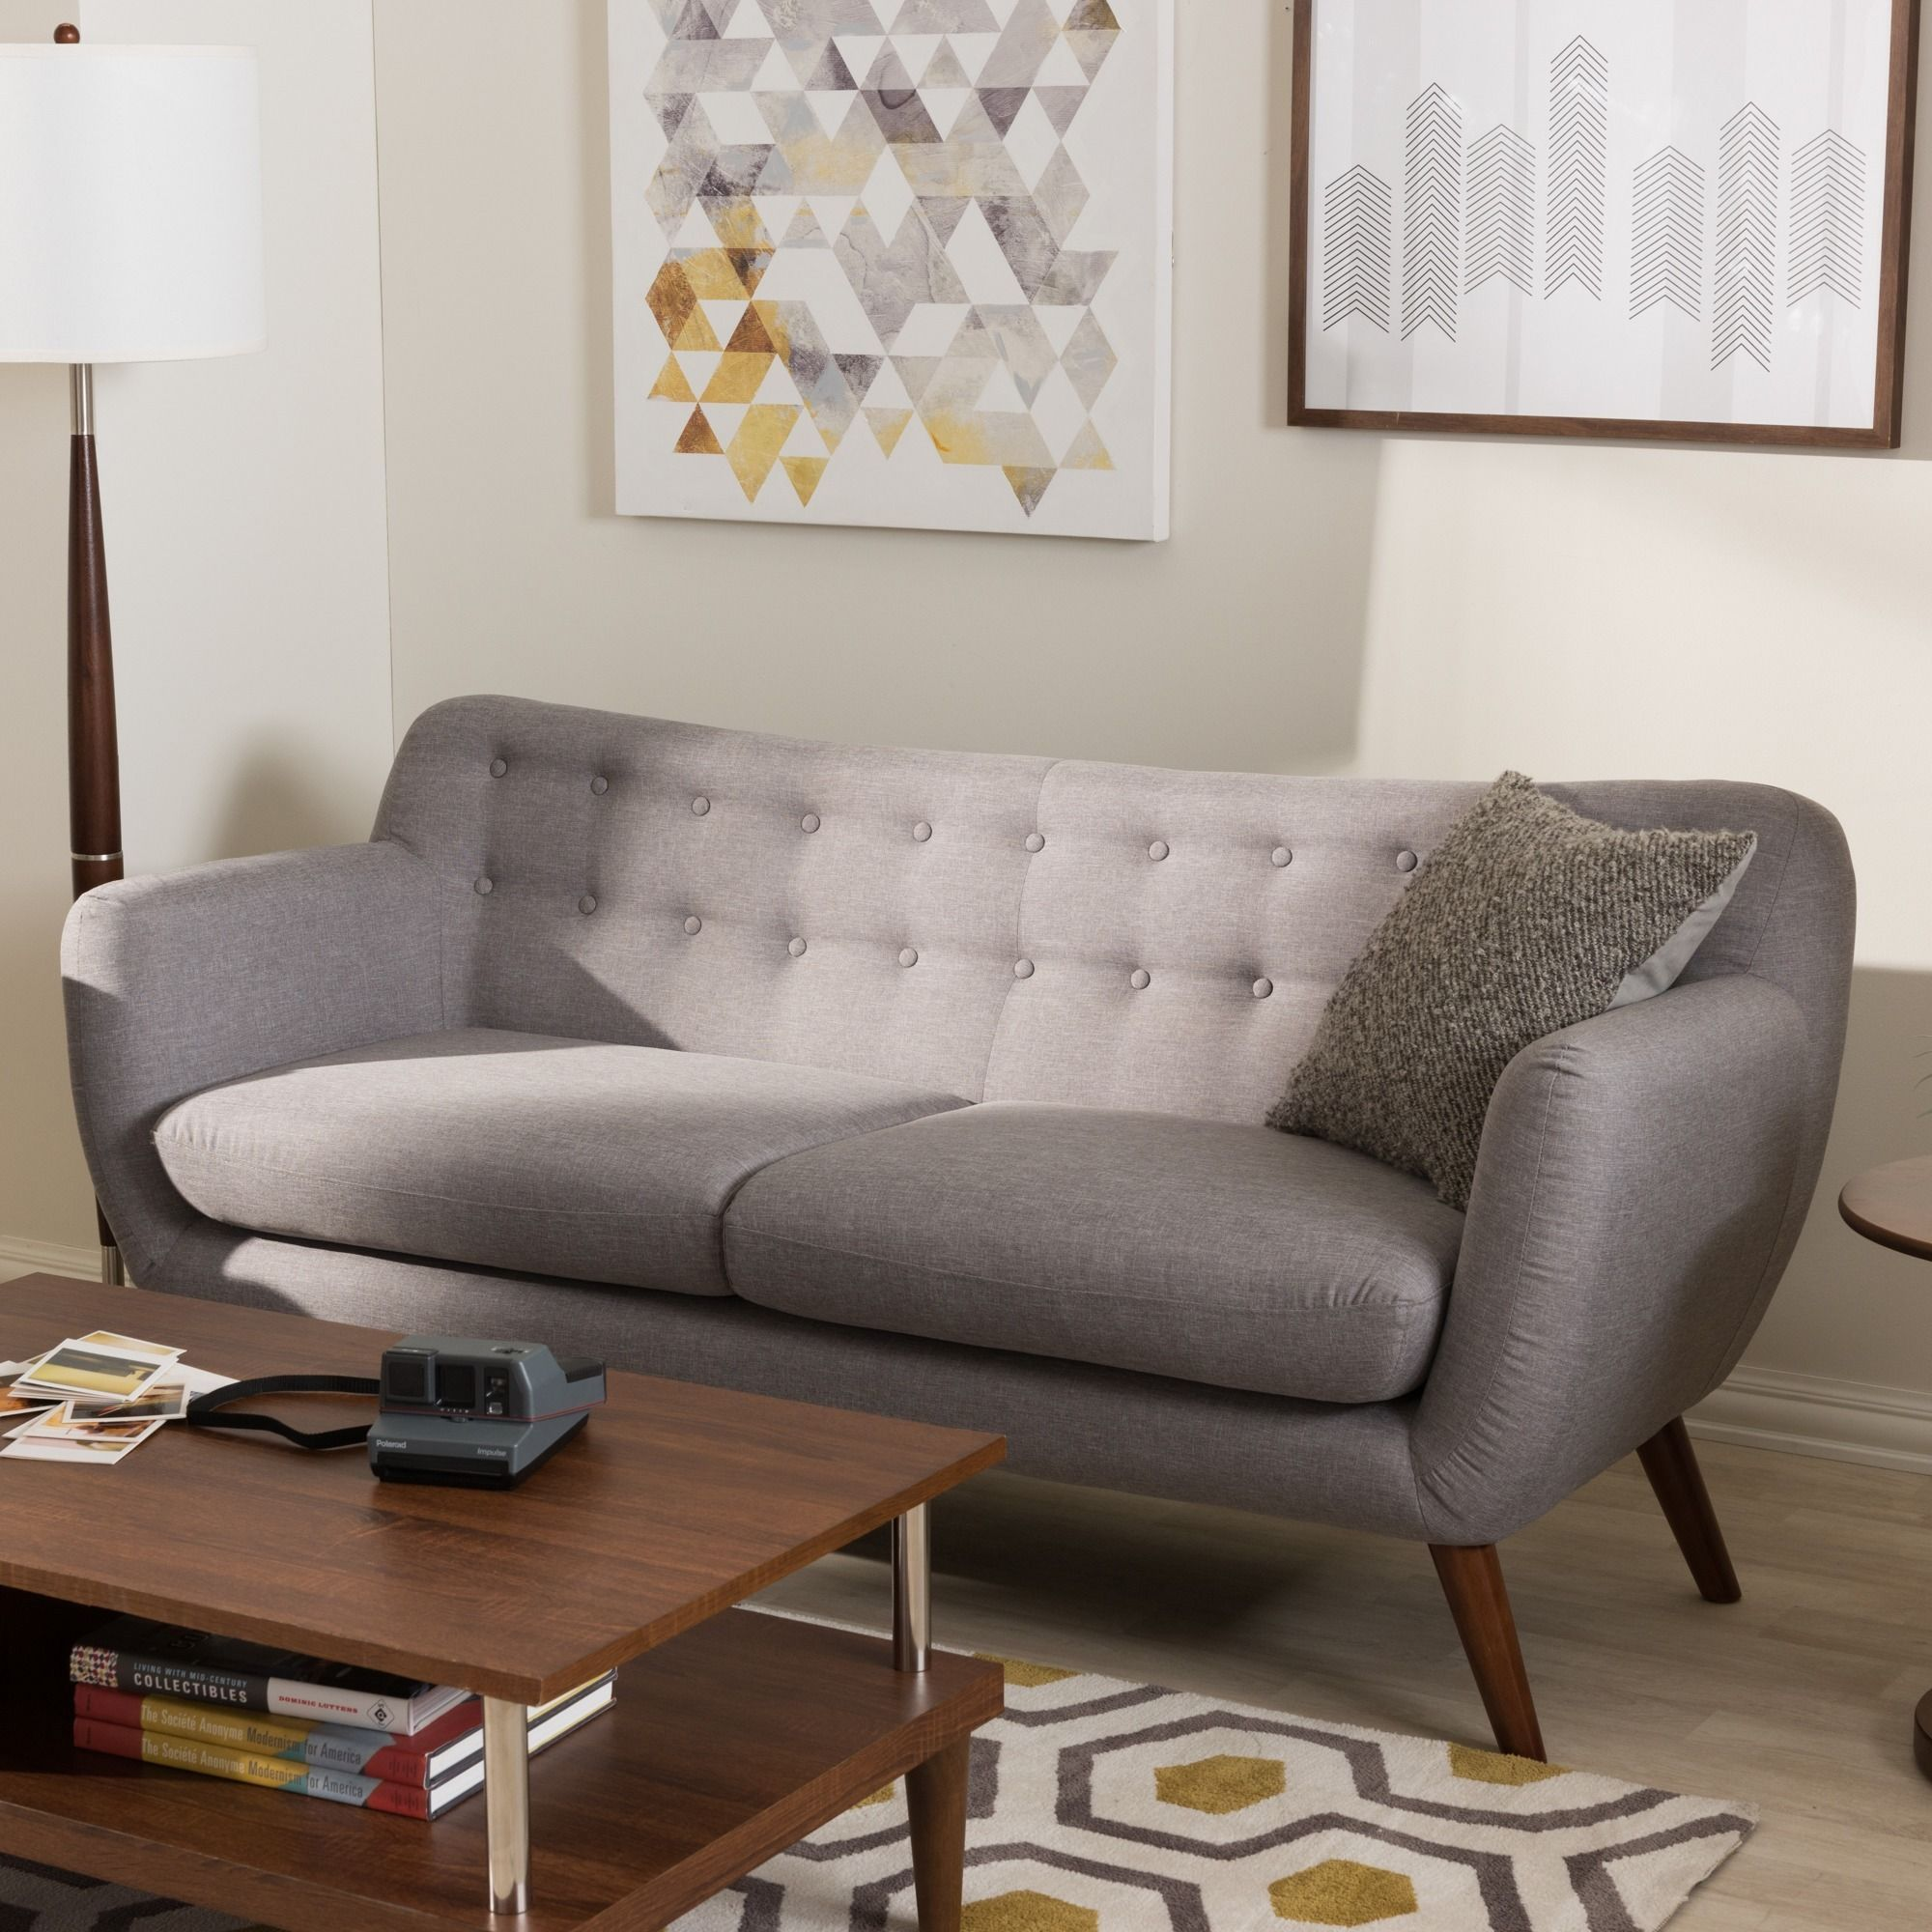 Baxton Studio Melita Mid Century Modern Fabric Grey Tufted Sofa Light